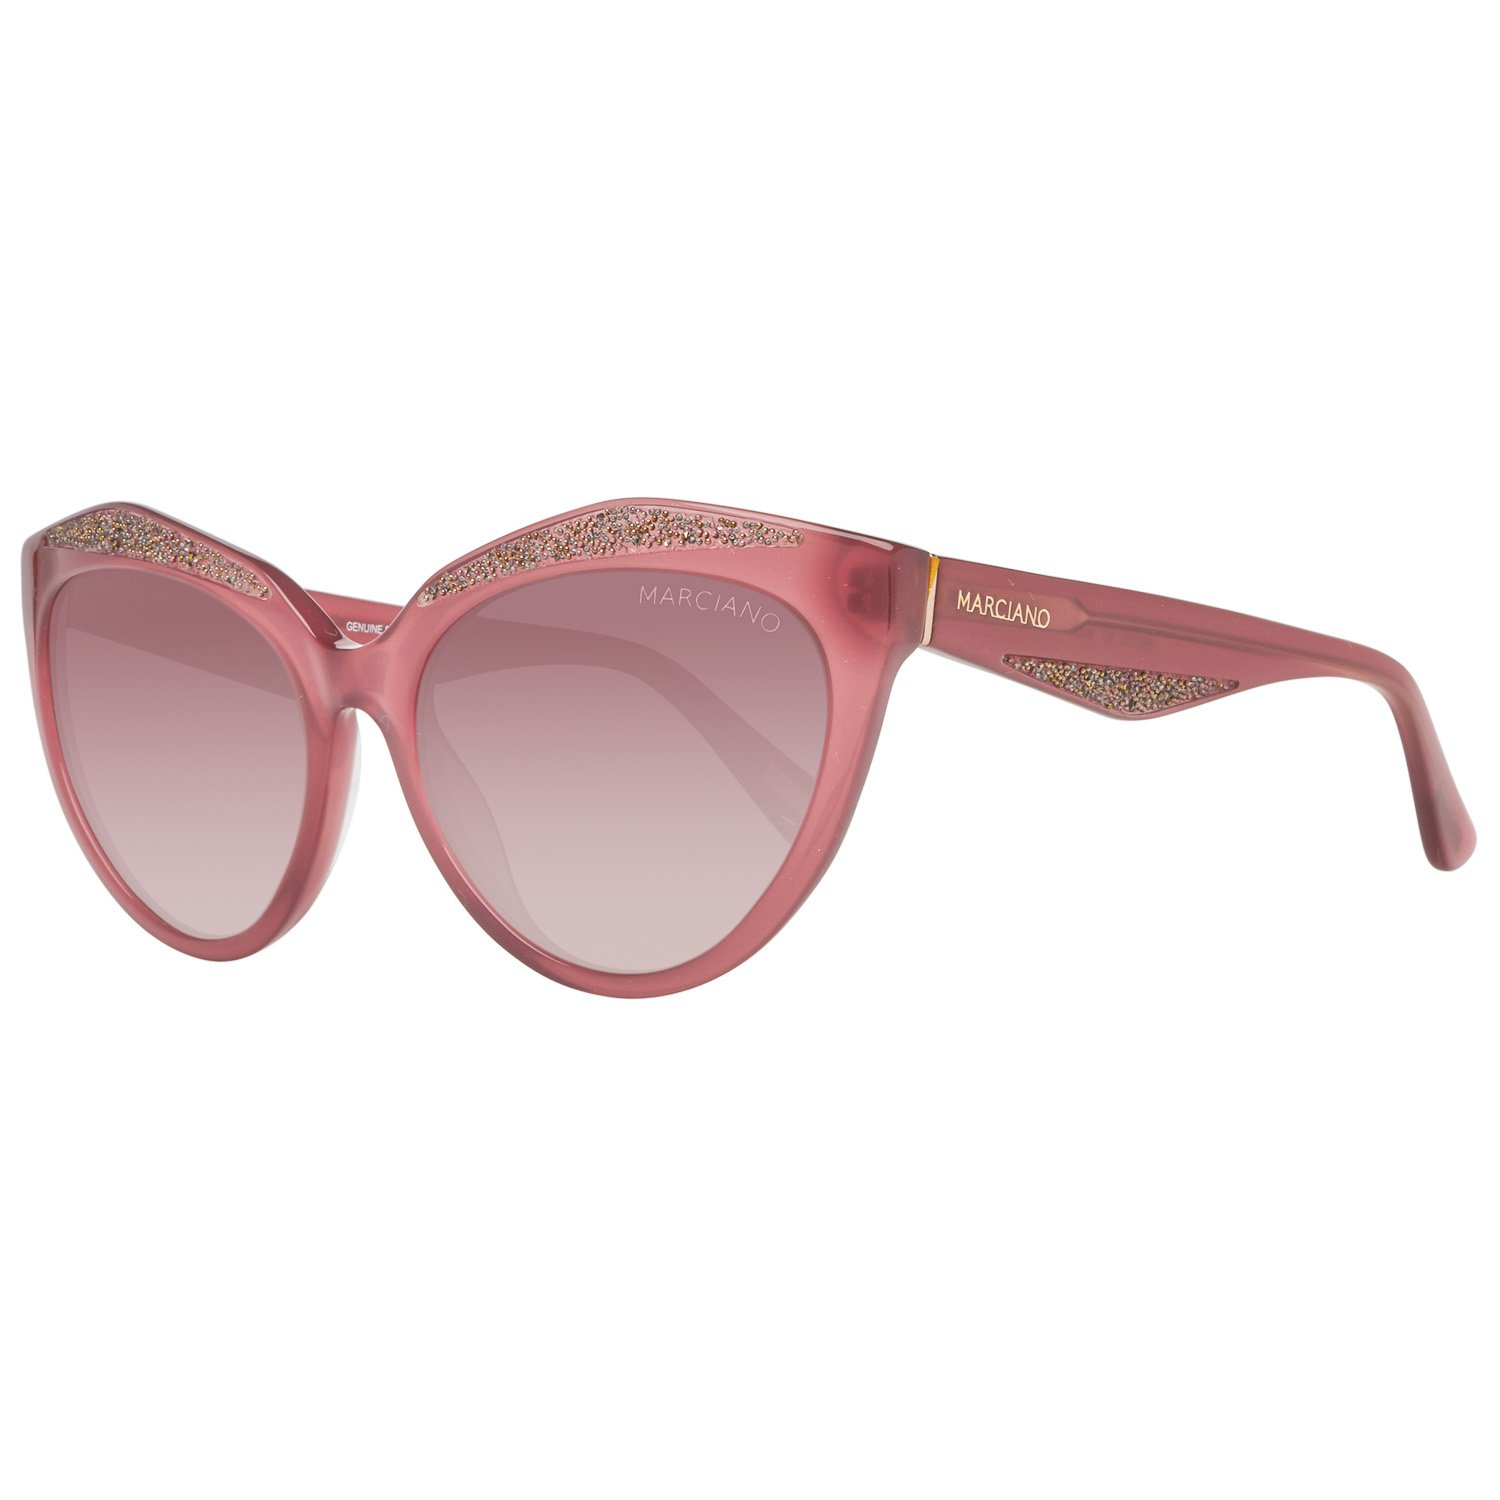 Guess By Marciano Women's Sunglasses Pink GM0776 5675F